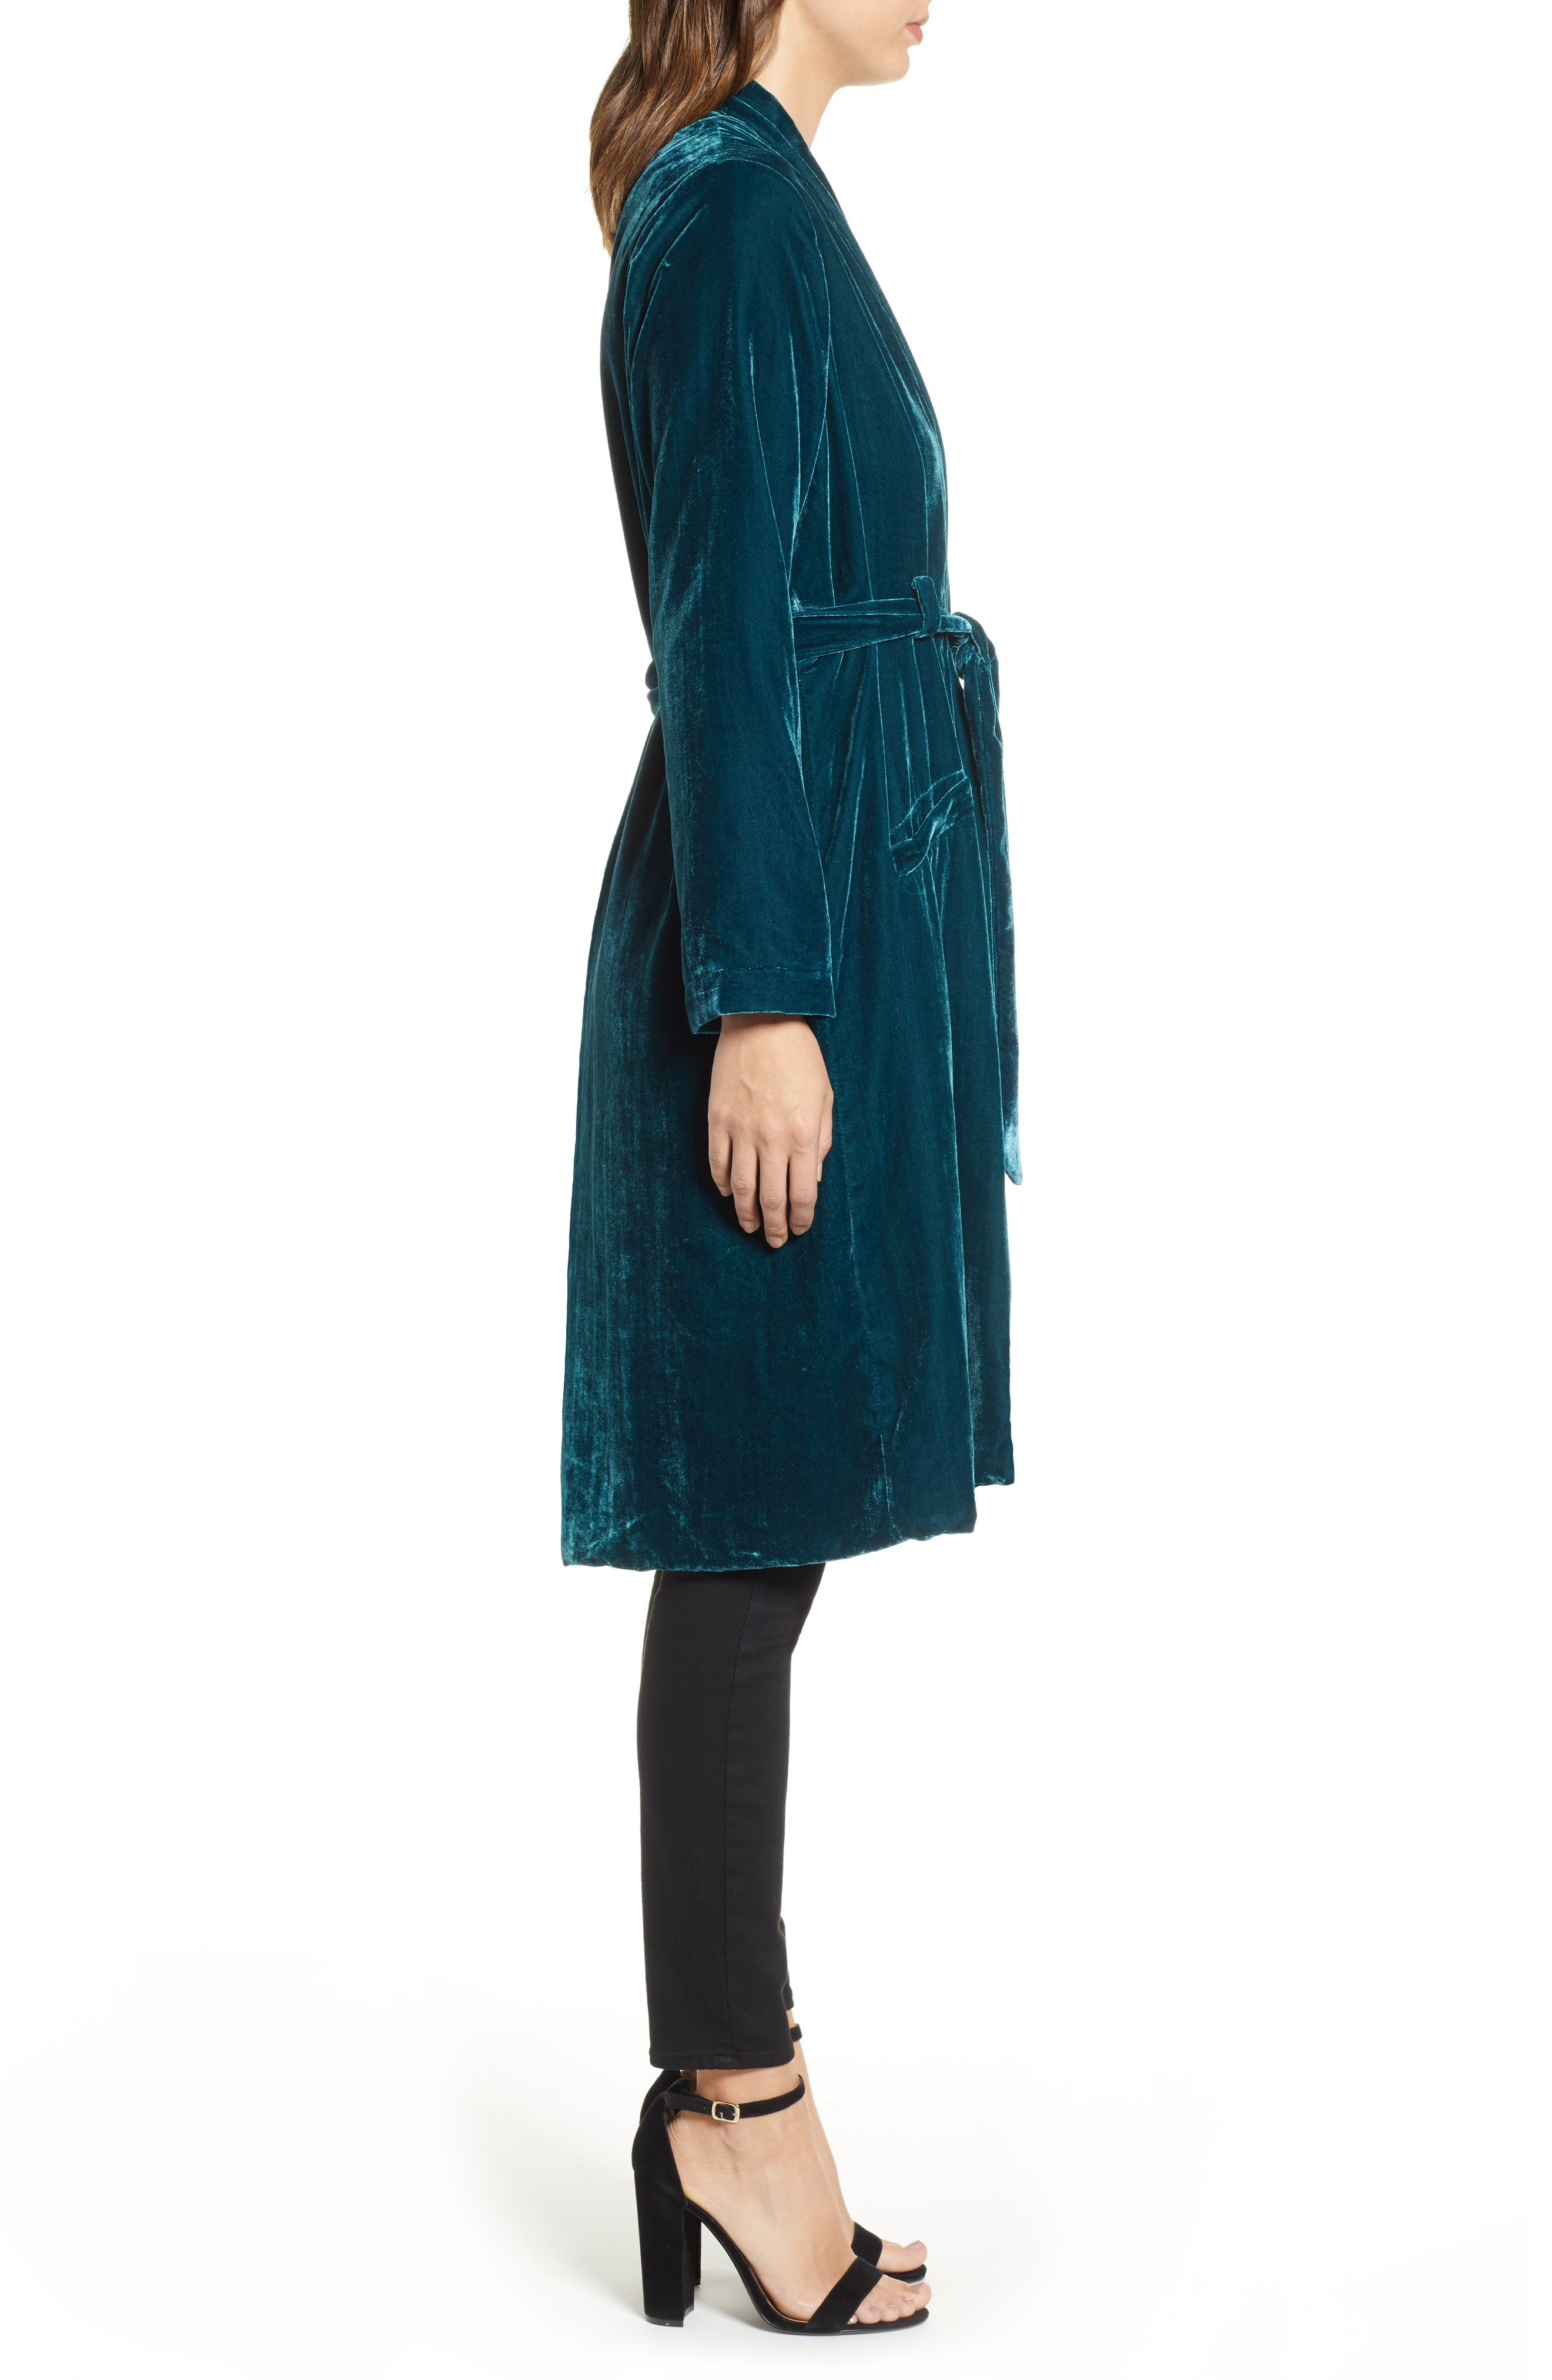 CUPCAKES AND CASHMERE,                             Belted Velvet Duster,                             Alternate thumbnail 4, color,                             FOREST GREEN